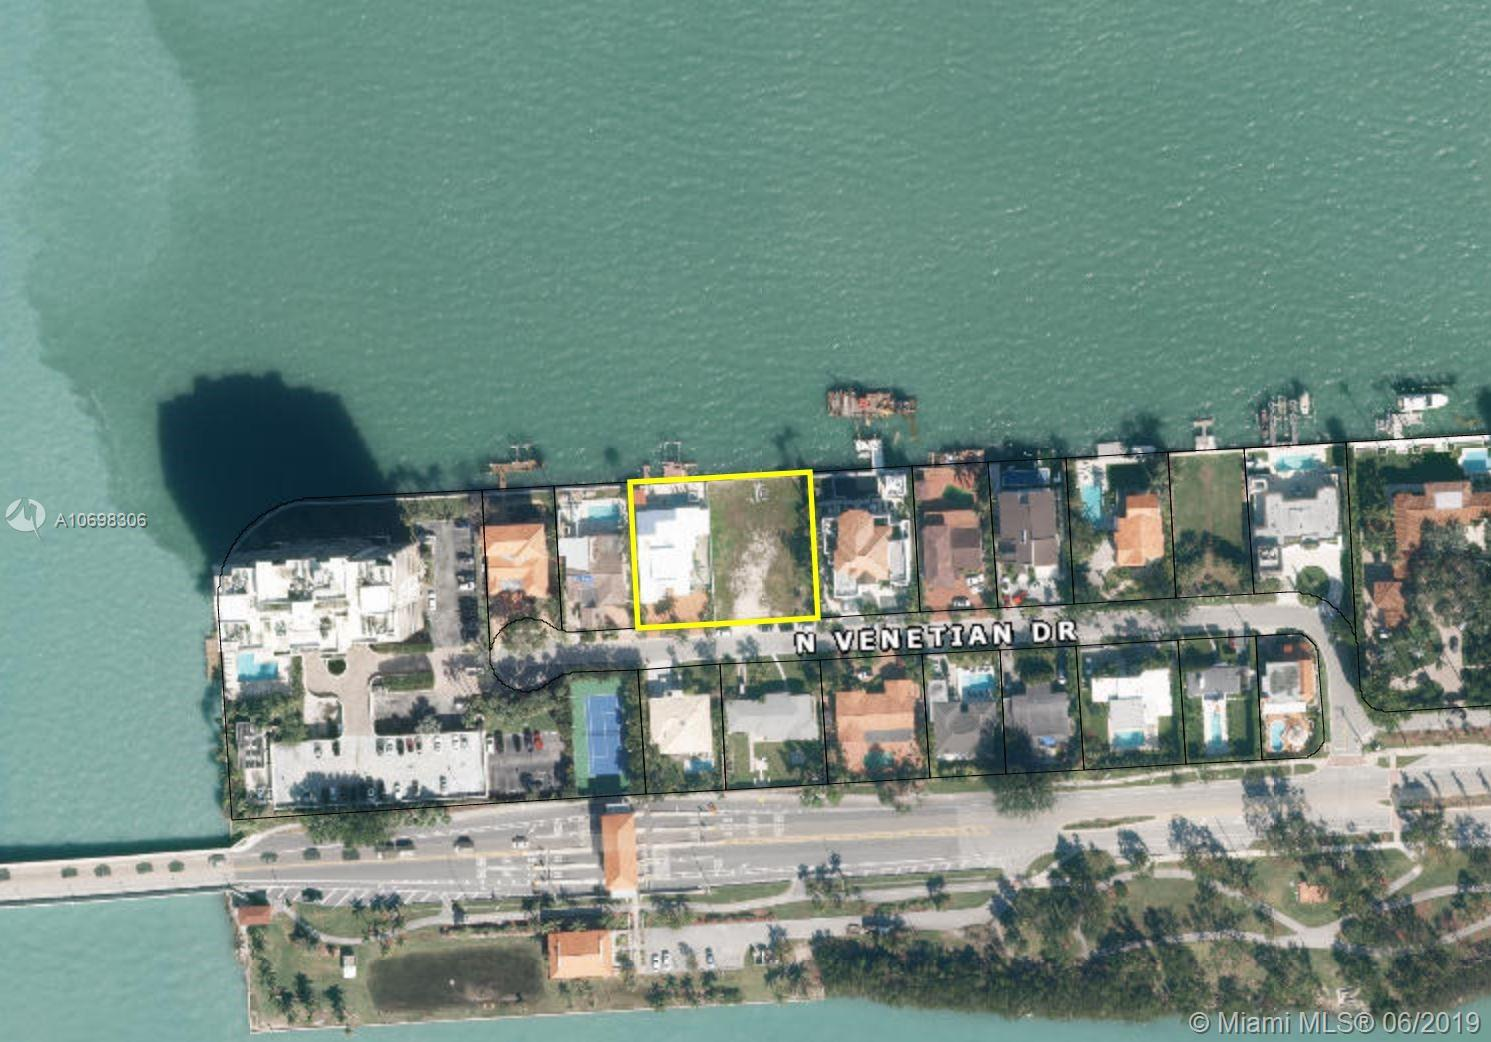 851 N Venetian Dr  For Sale A10698306, FL